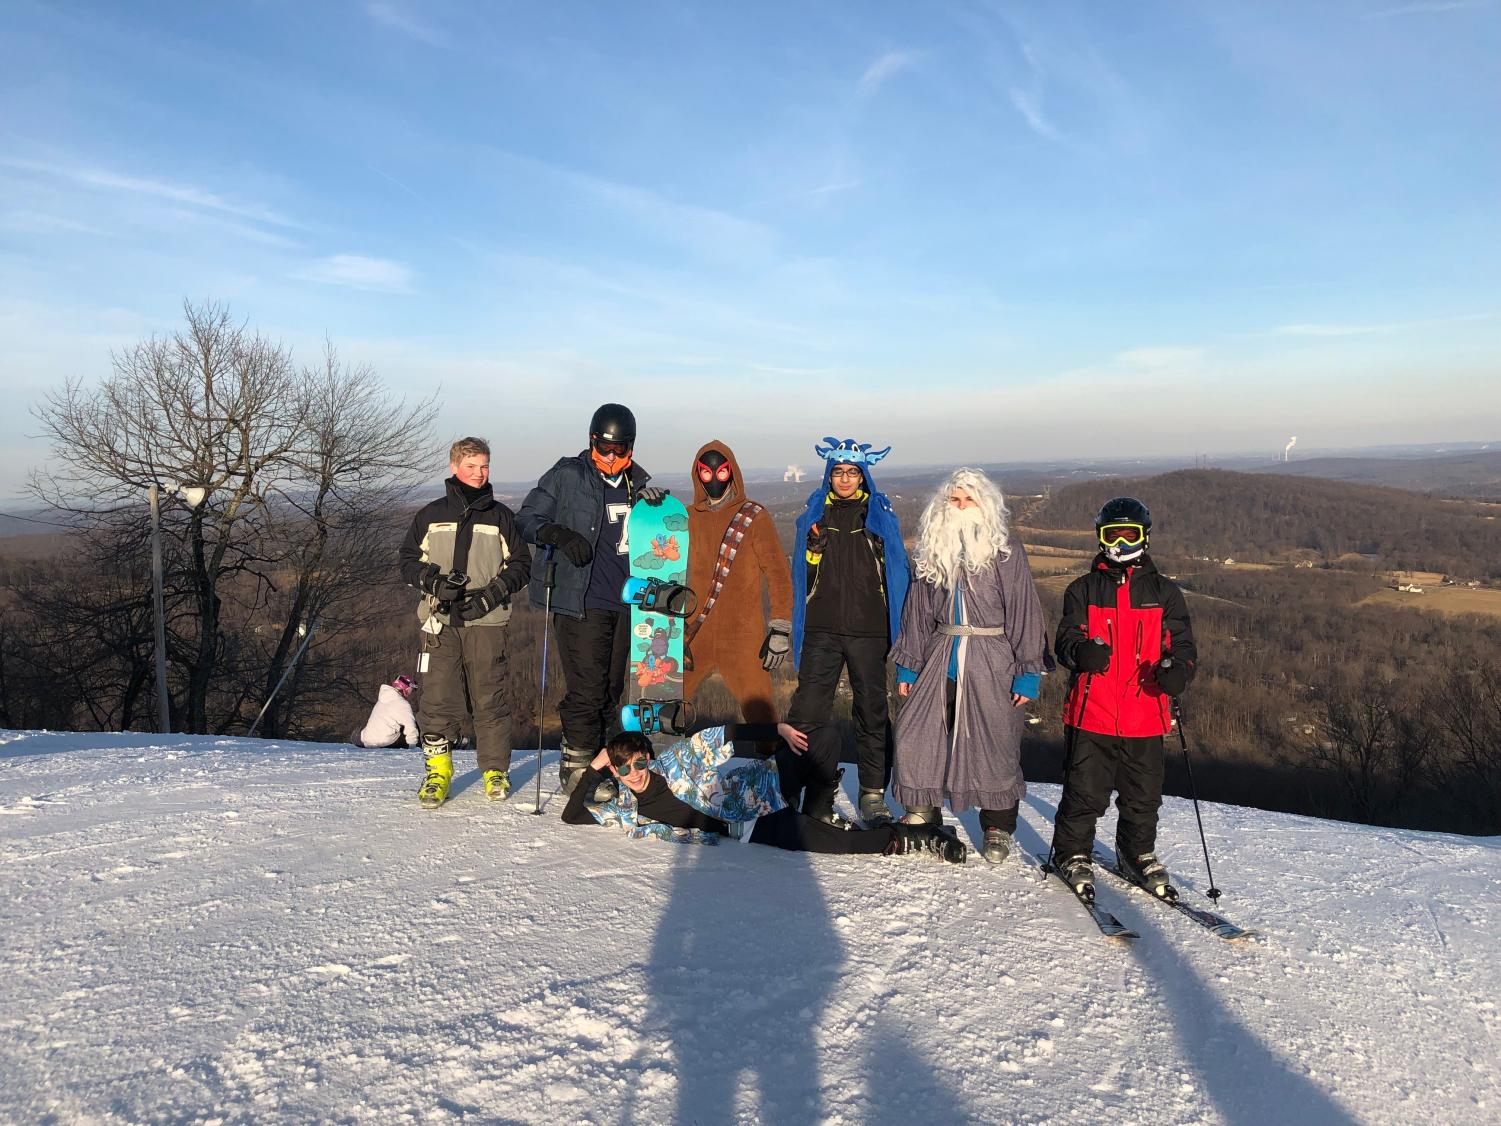 Dallastown sophomores decided to dress up in costume for ski club to finish off the season. This photo was taken from the top of Gunbarrel, a double black diamond, on February 28th.